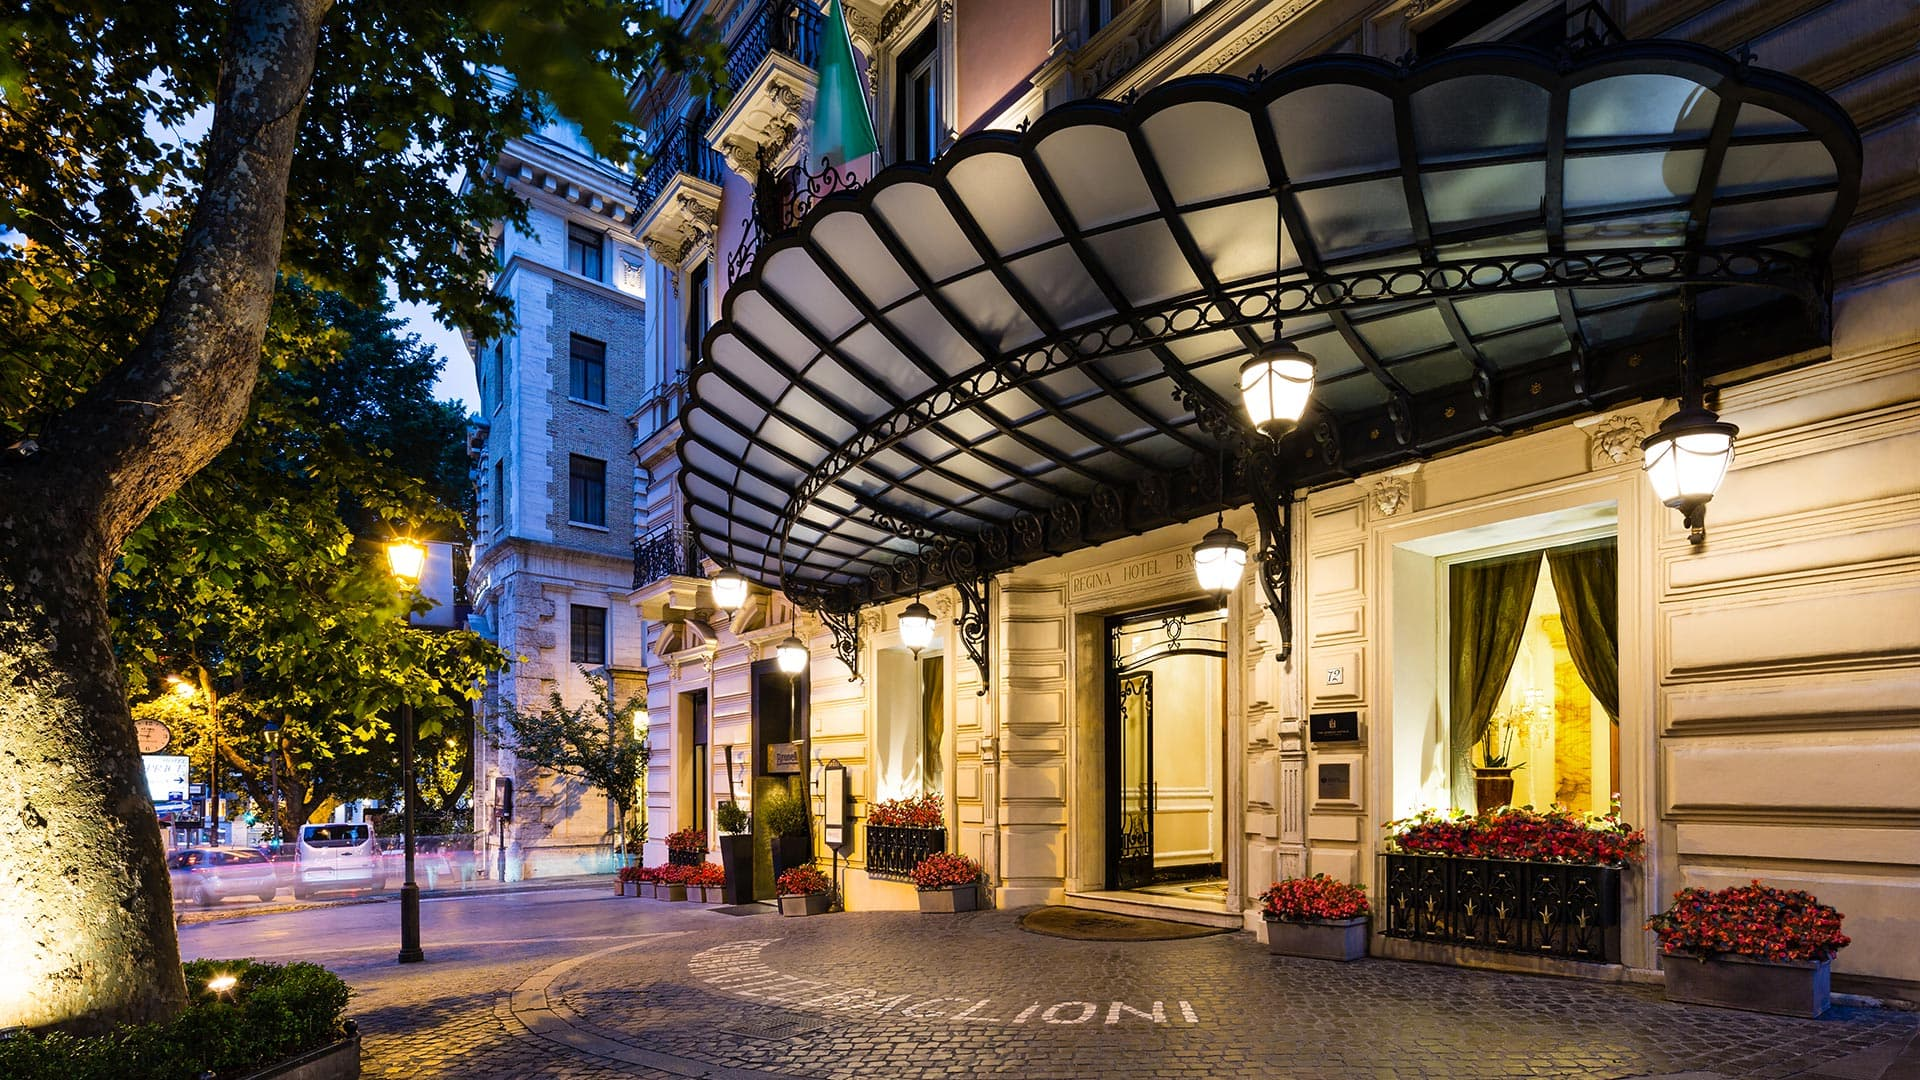 baglioni hotel regina 5 star italian luxury accommodation